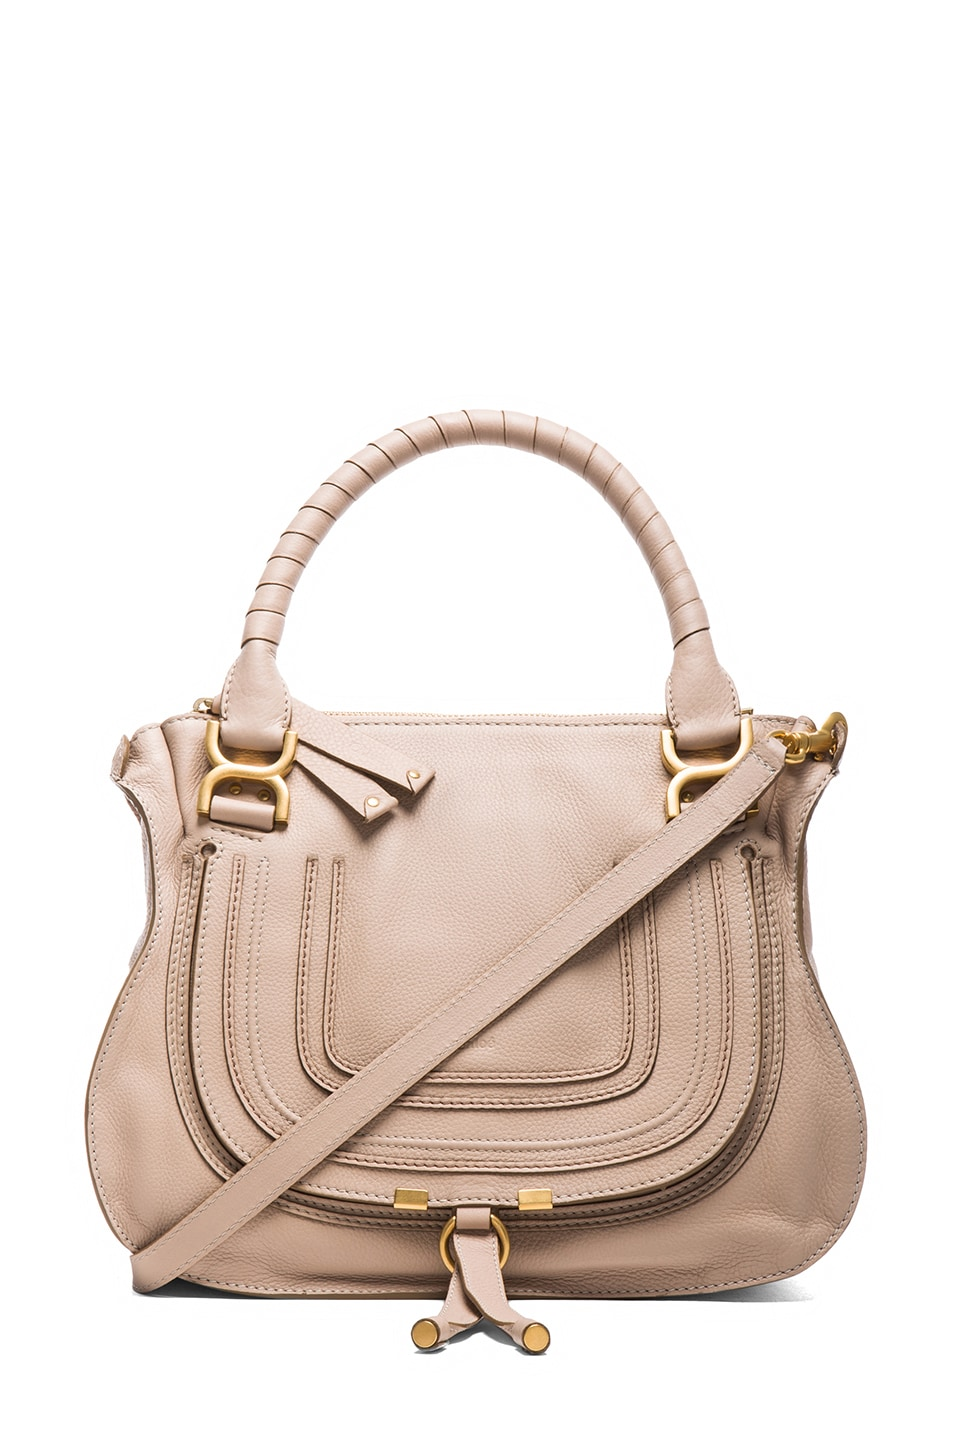 Image 1 of Chloe Medium Marcie Shoulder Bag in Rope Beige